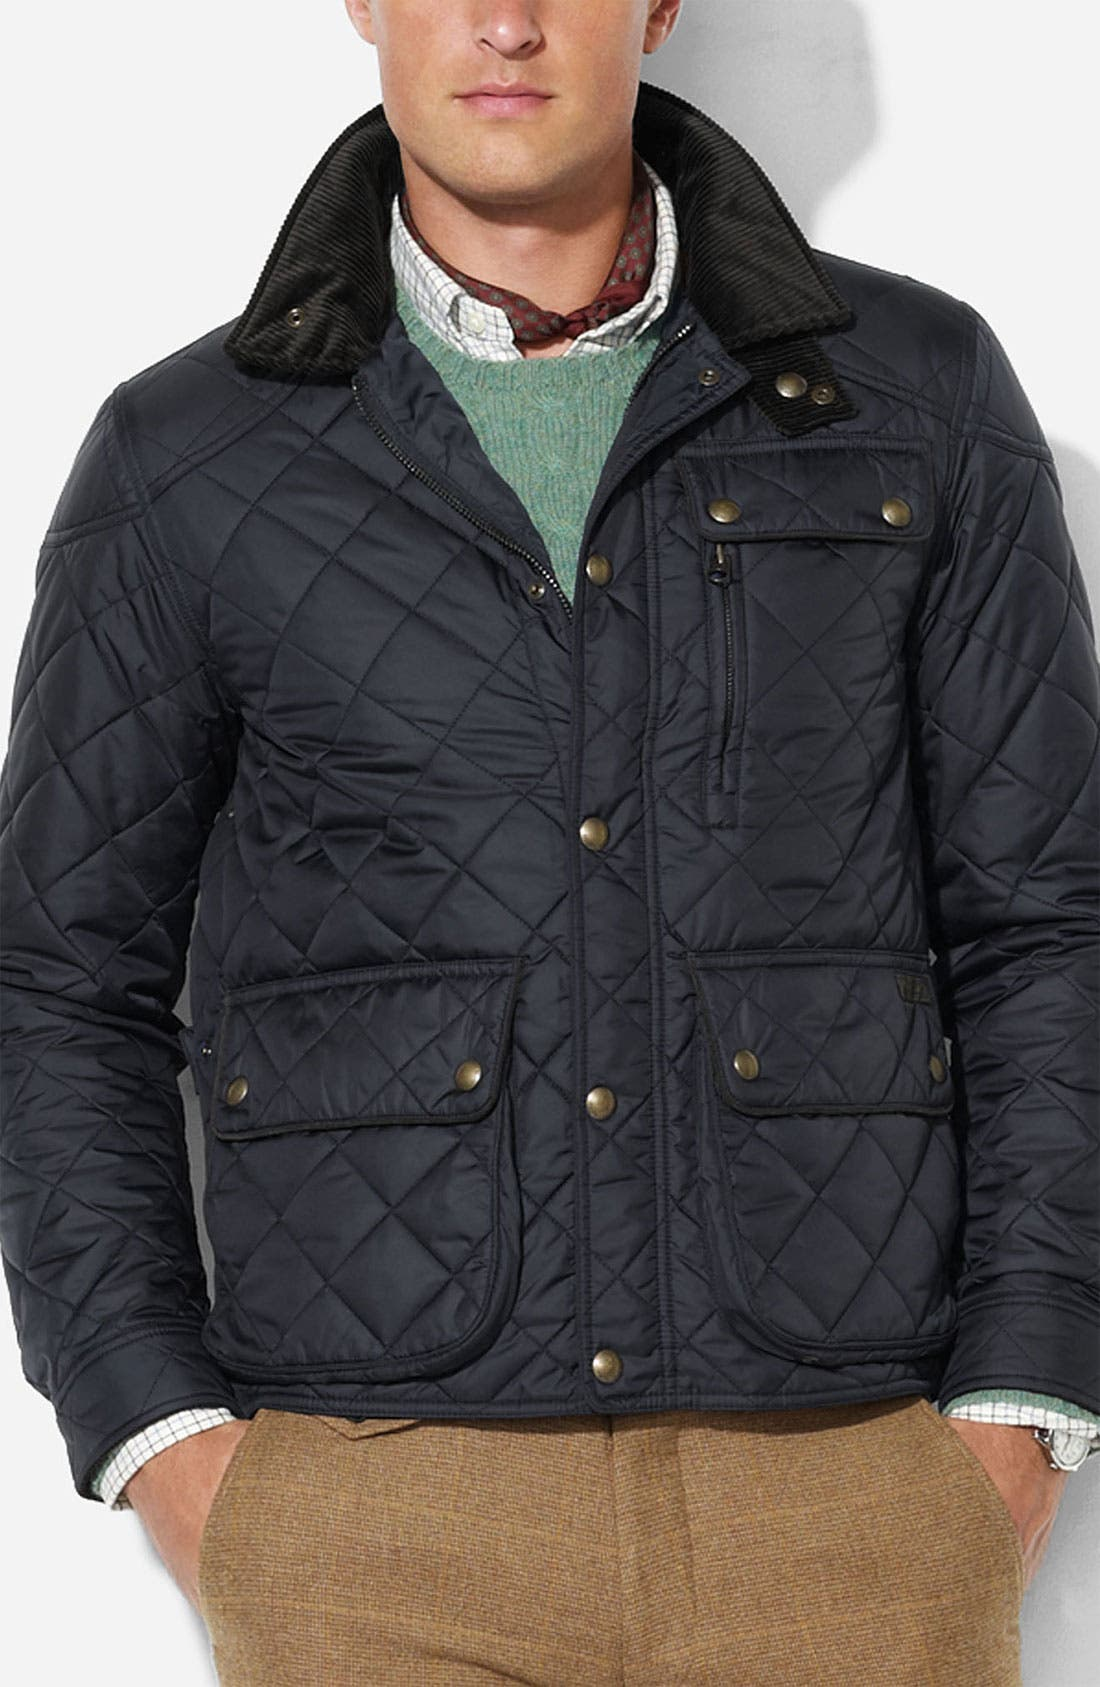 Main Image - Polo Ralph Lauren 'Cadwell' Classic Fit Quilted Bomber Jacket